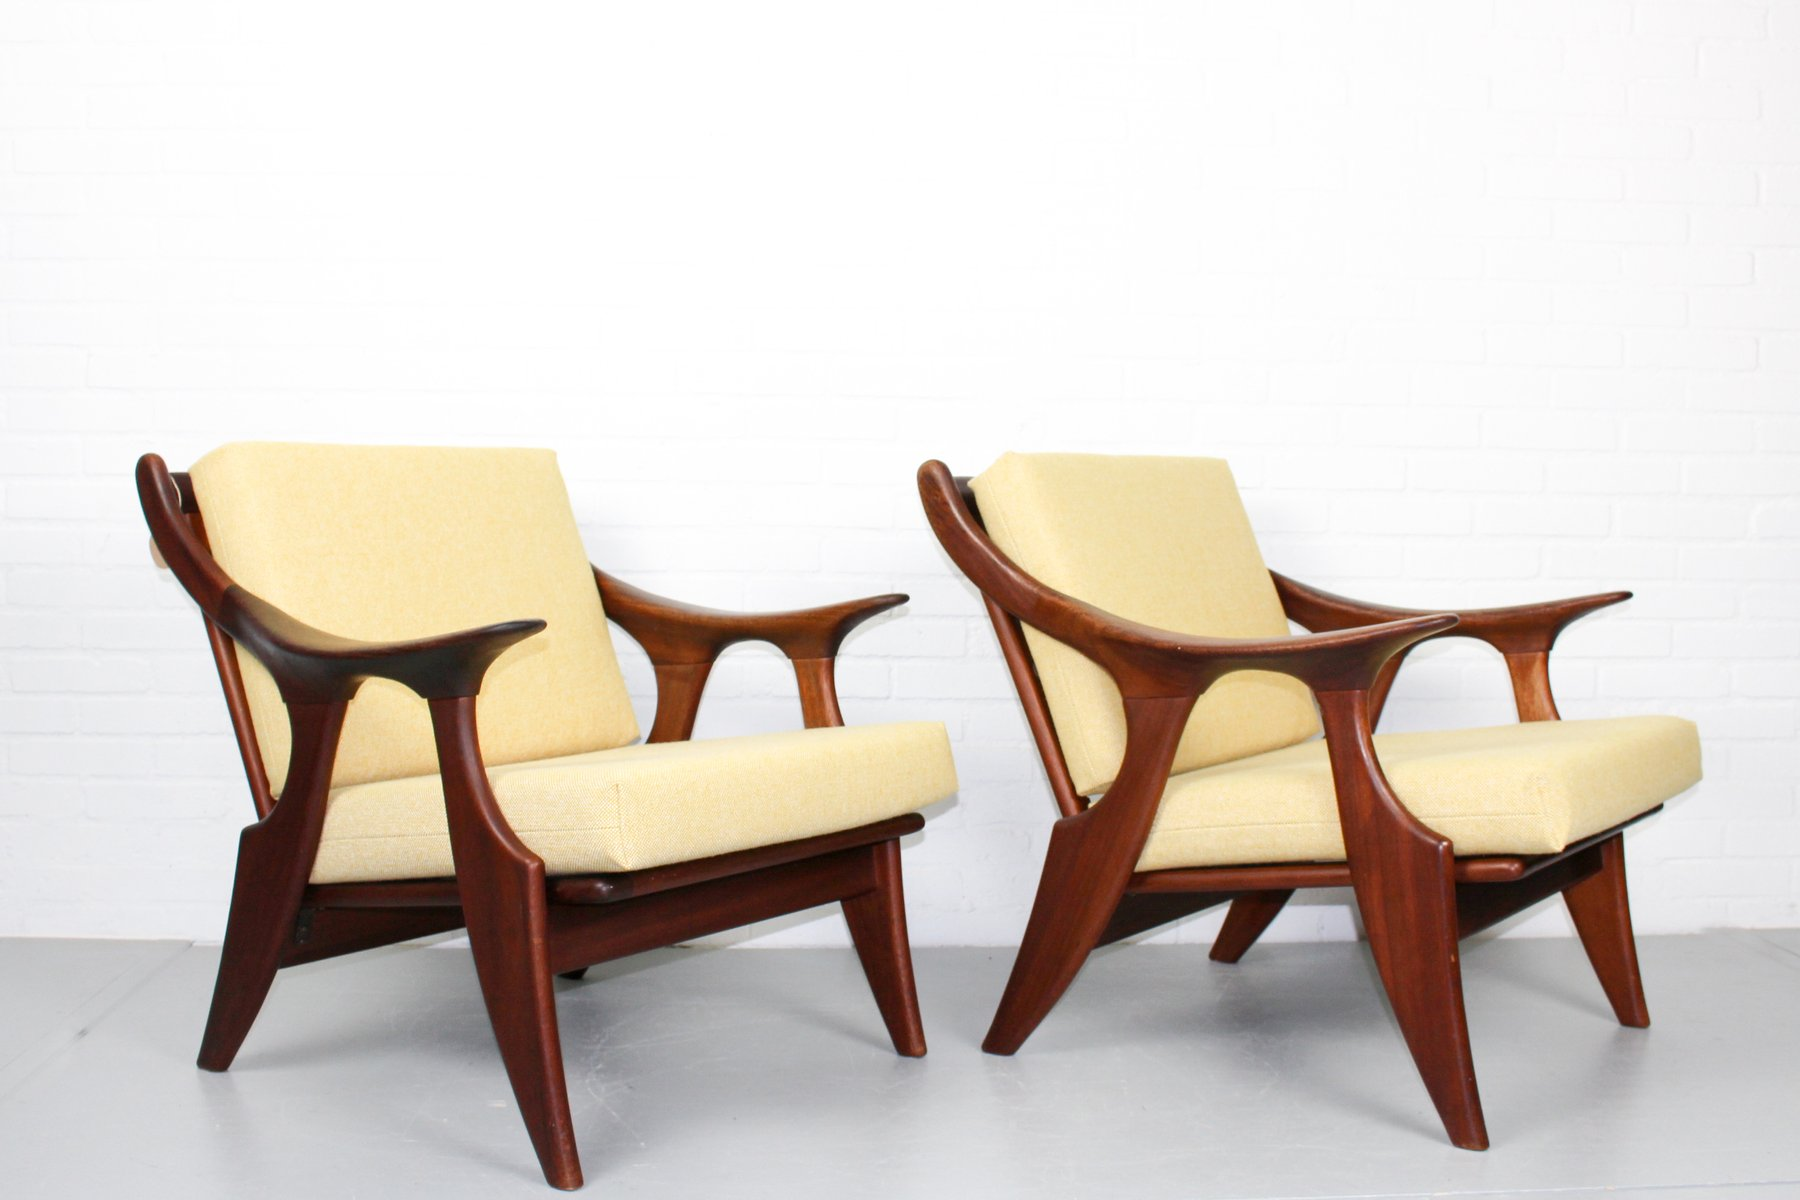 Small Lounge Chairs By De Ster Gelderland 1950s Set Of 2 Holiday